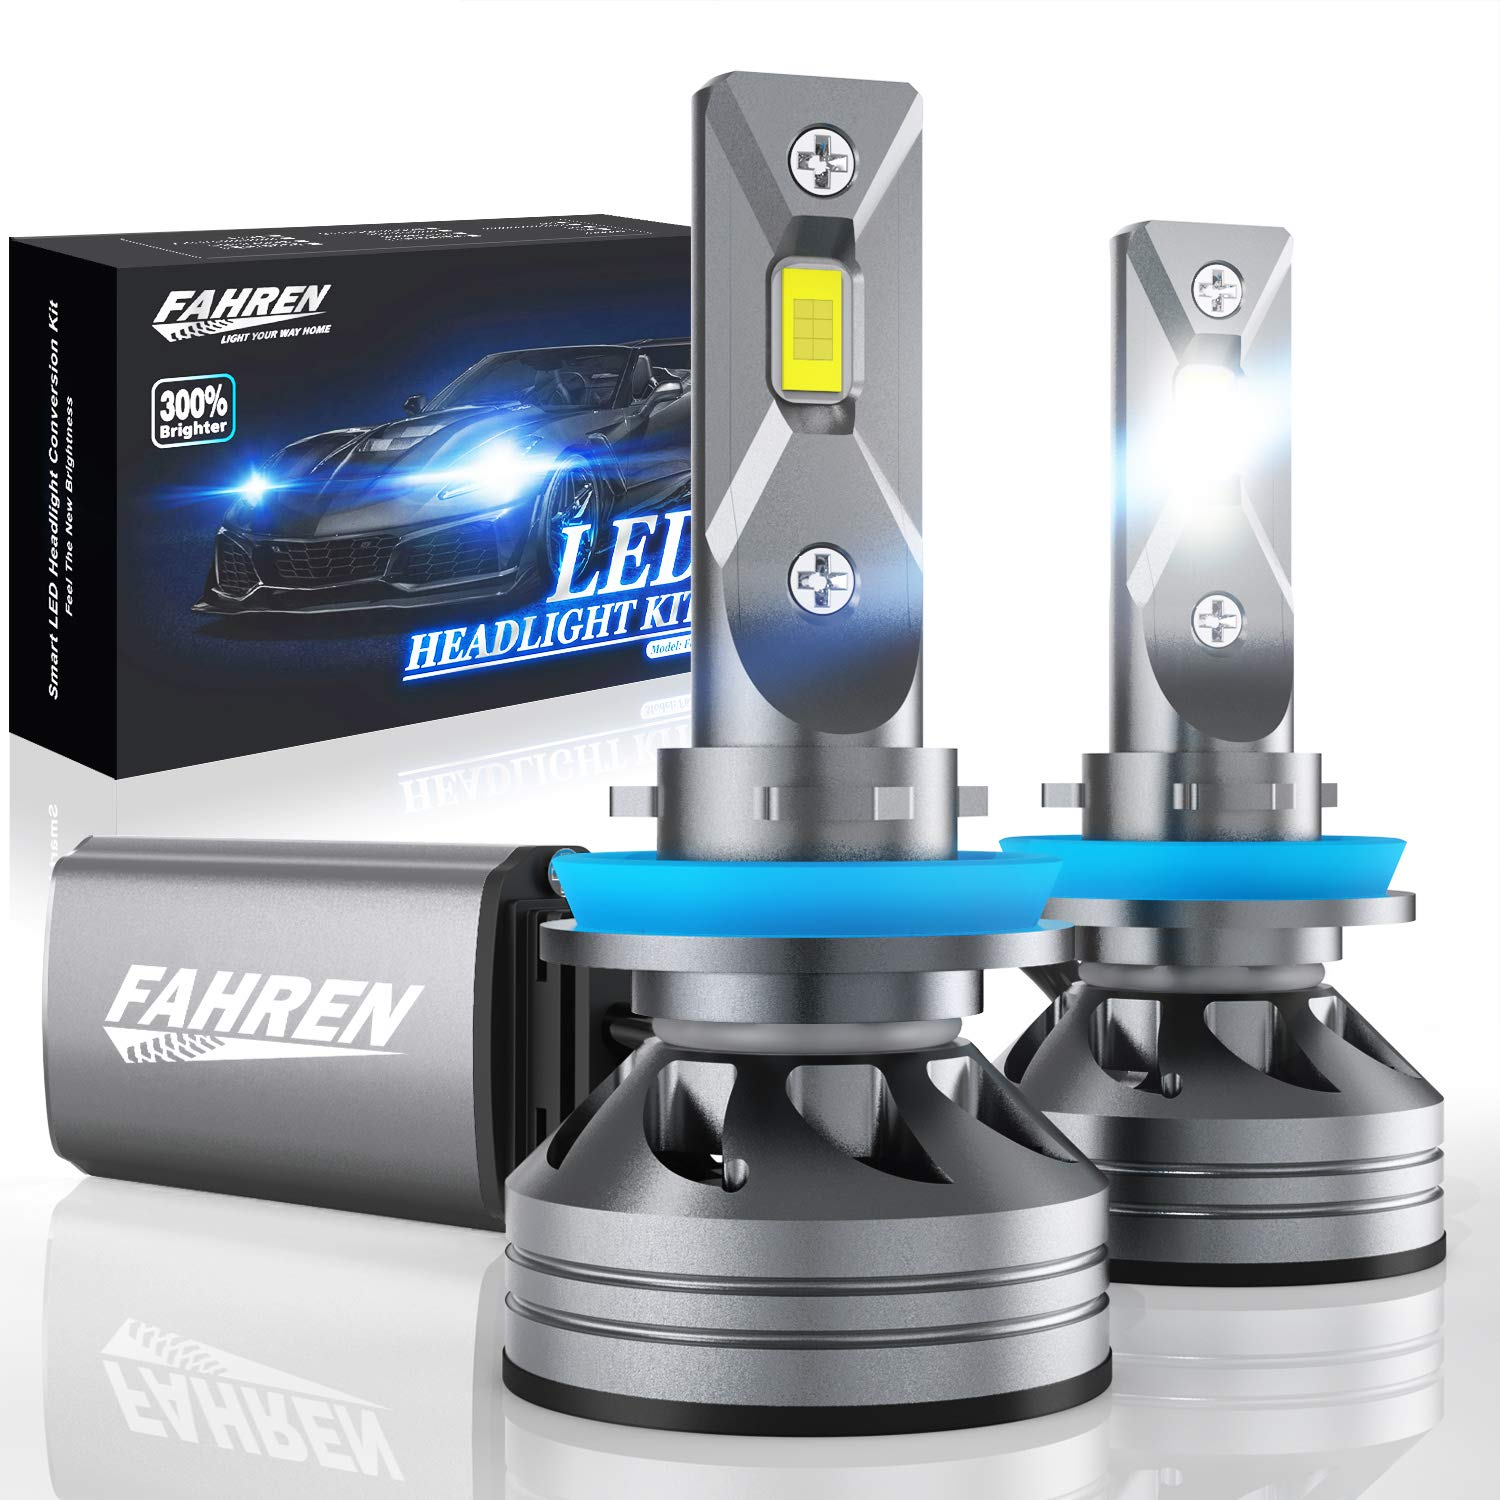 Fahren H11/H9/H8 Bulbs, 60W 10000 Lumens Super Bright LED Waterproof Headlights Conversion Kit 6500K Cool White IP68